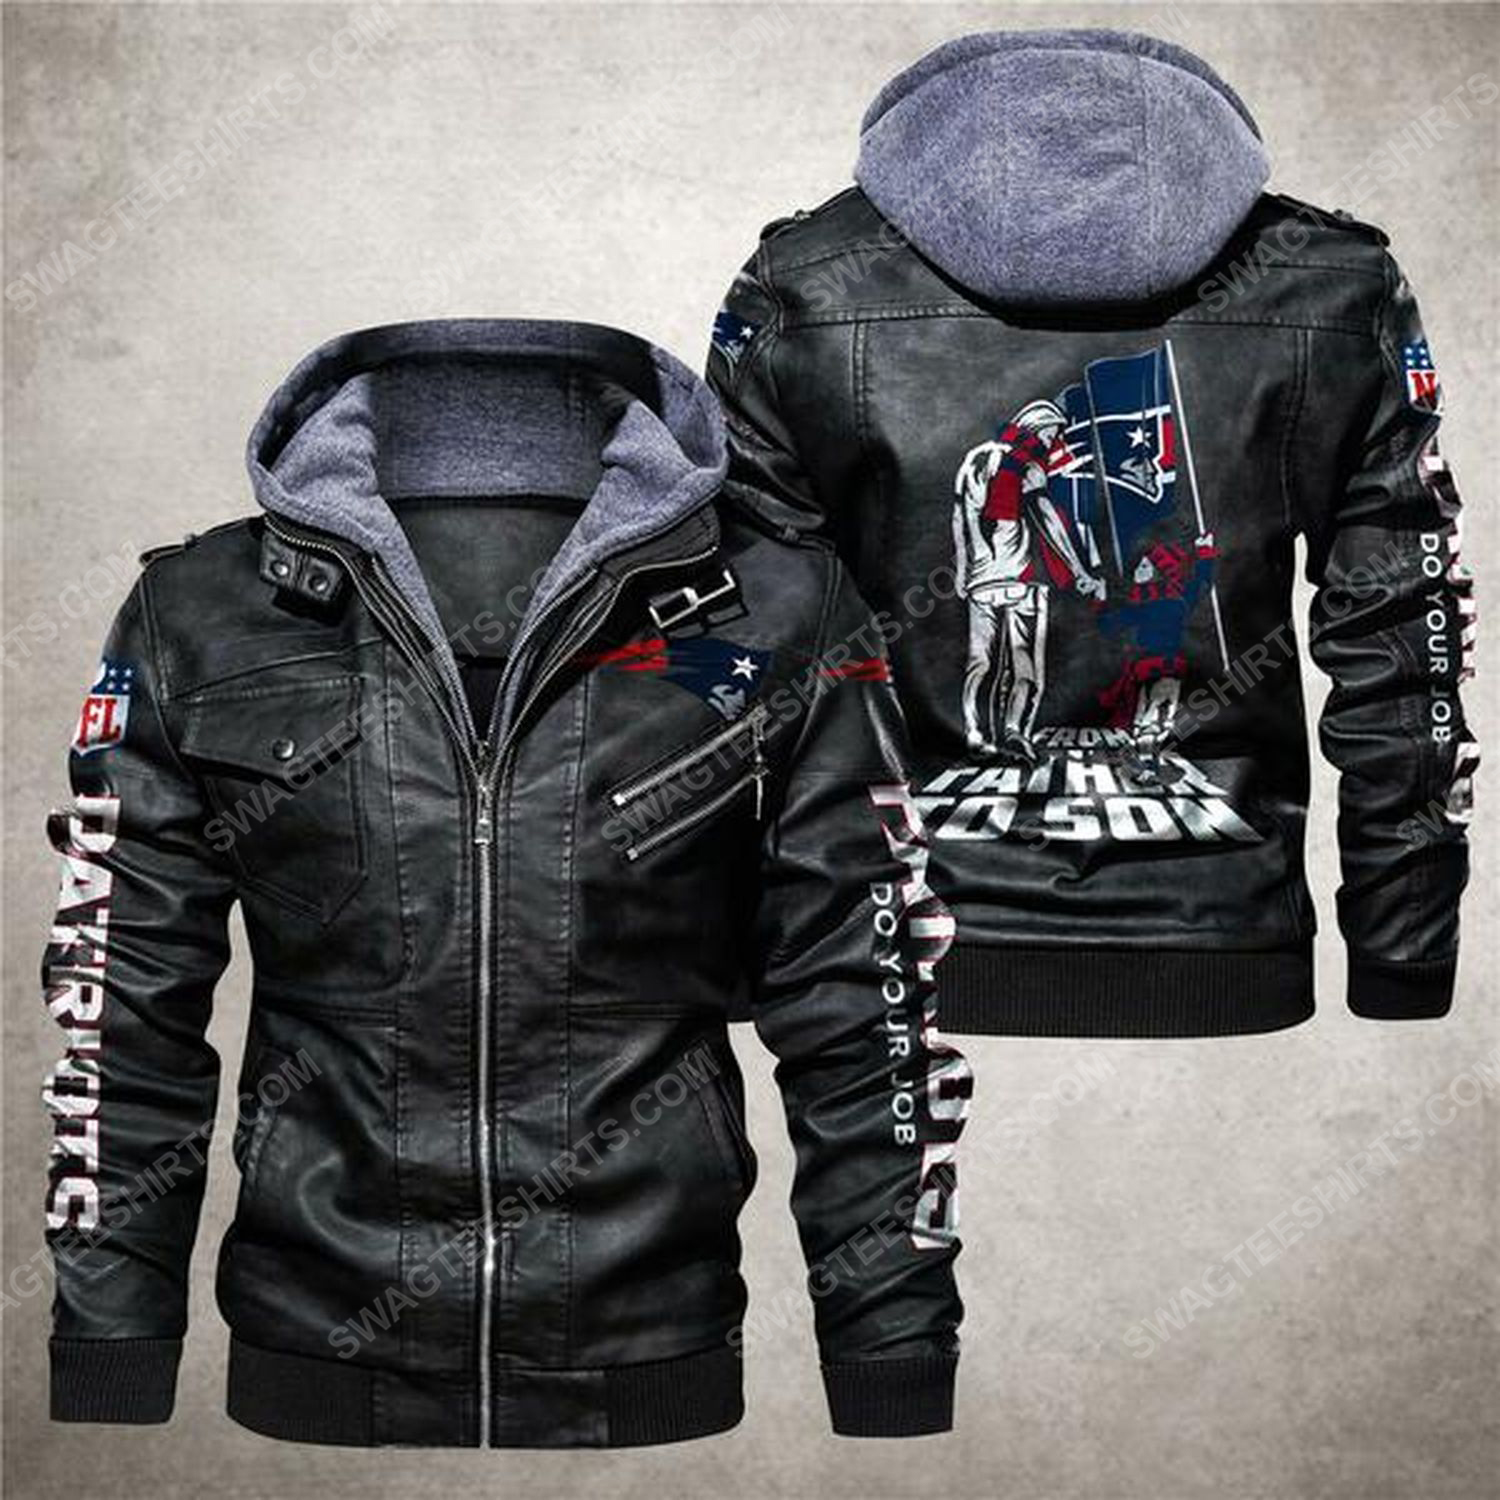 National football league new england patriots from father to son leather jacket - black